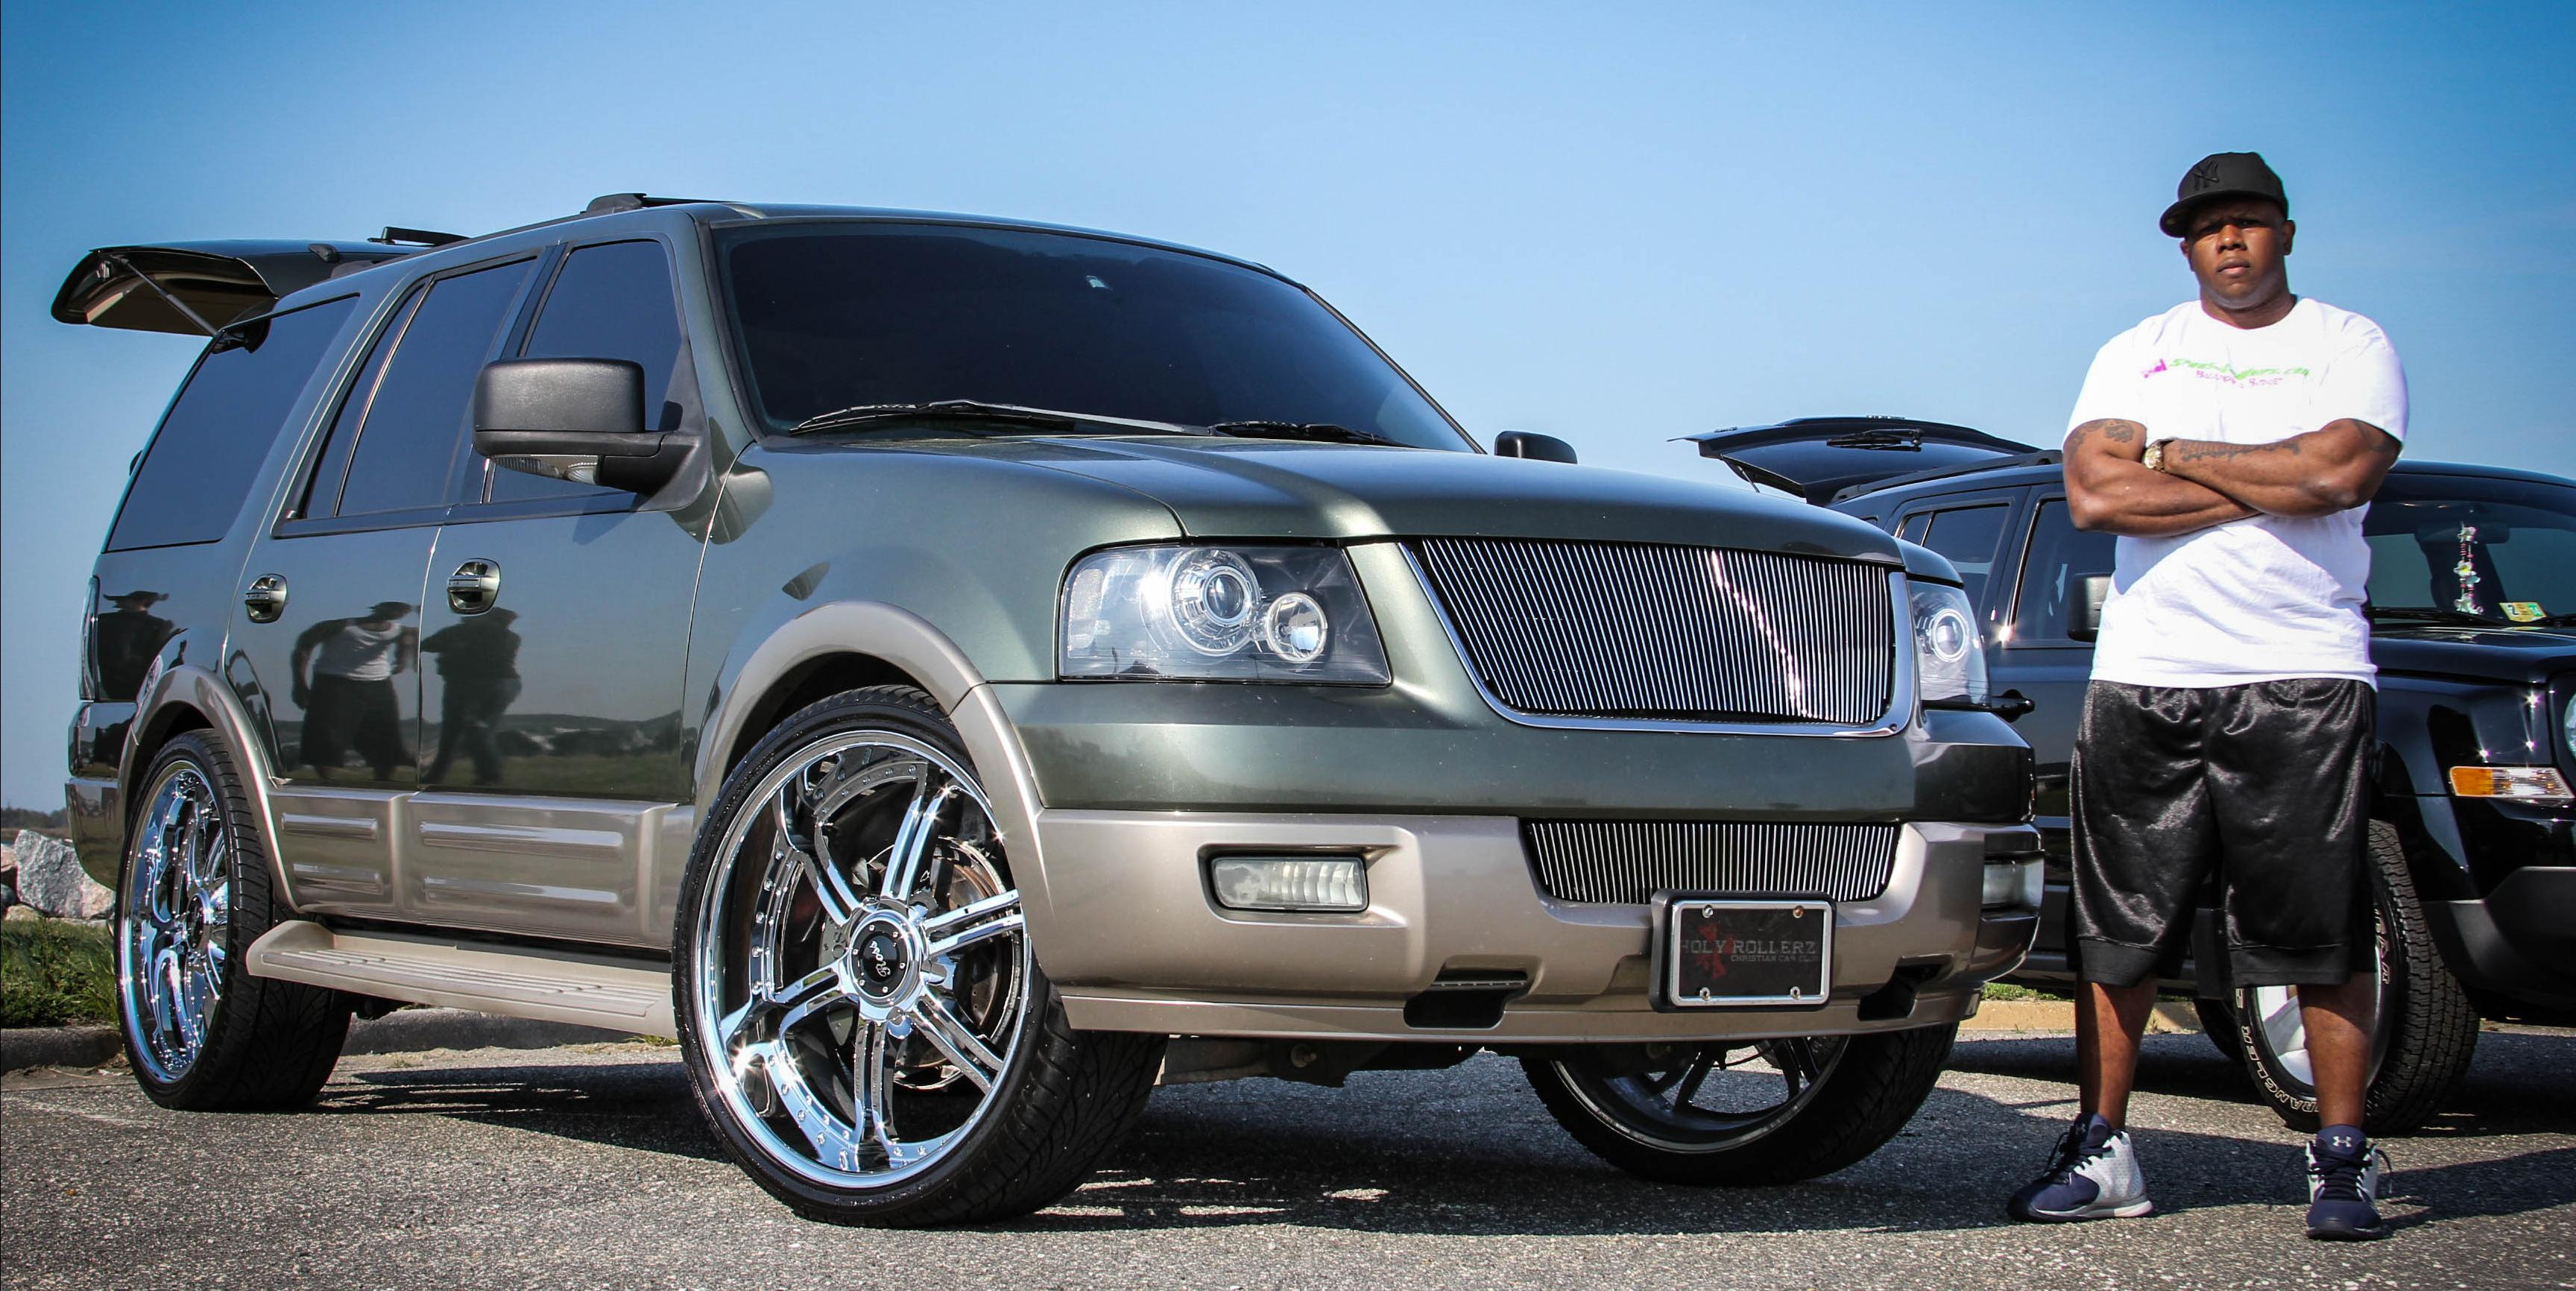 2004 expedition custom rims pictures autos weblog for 2004 ford expedition interior parts